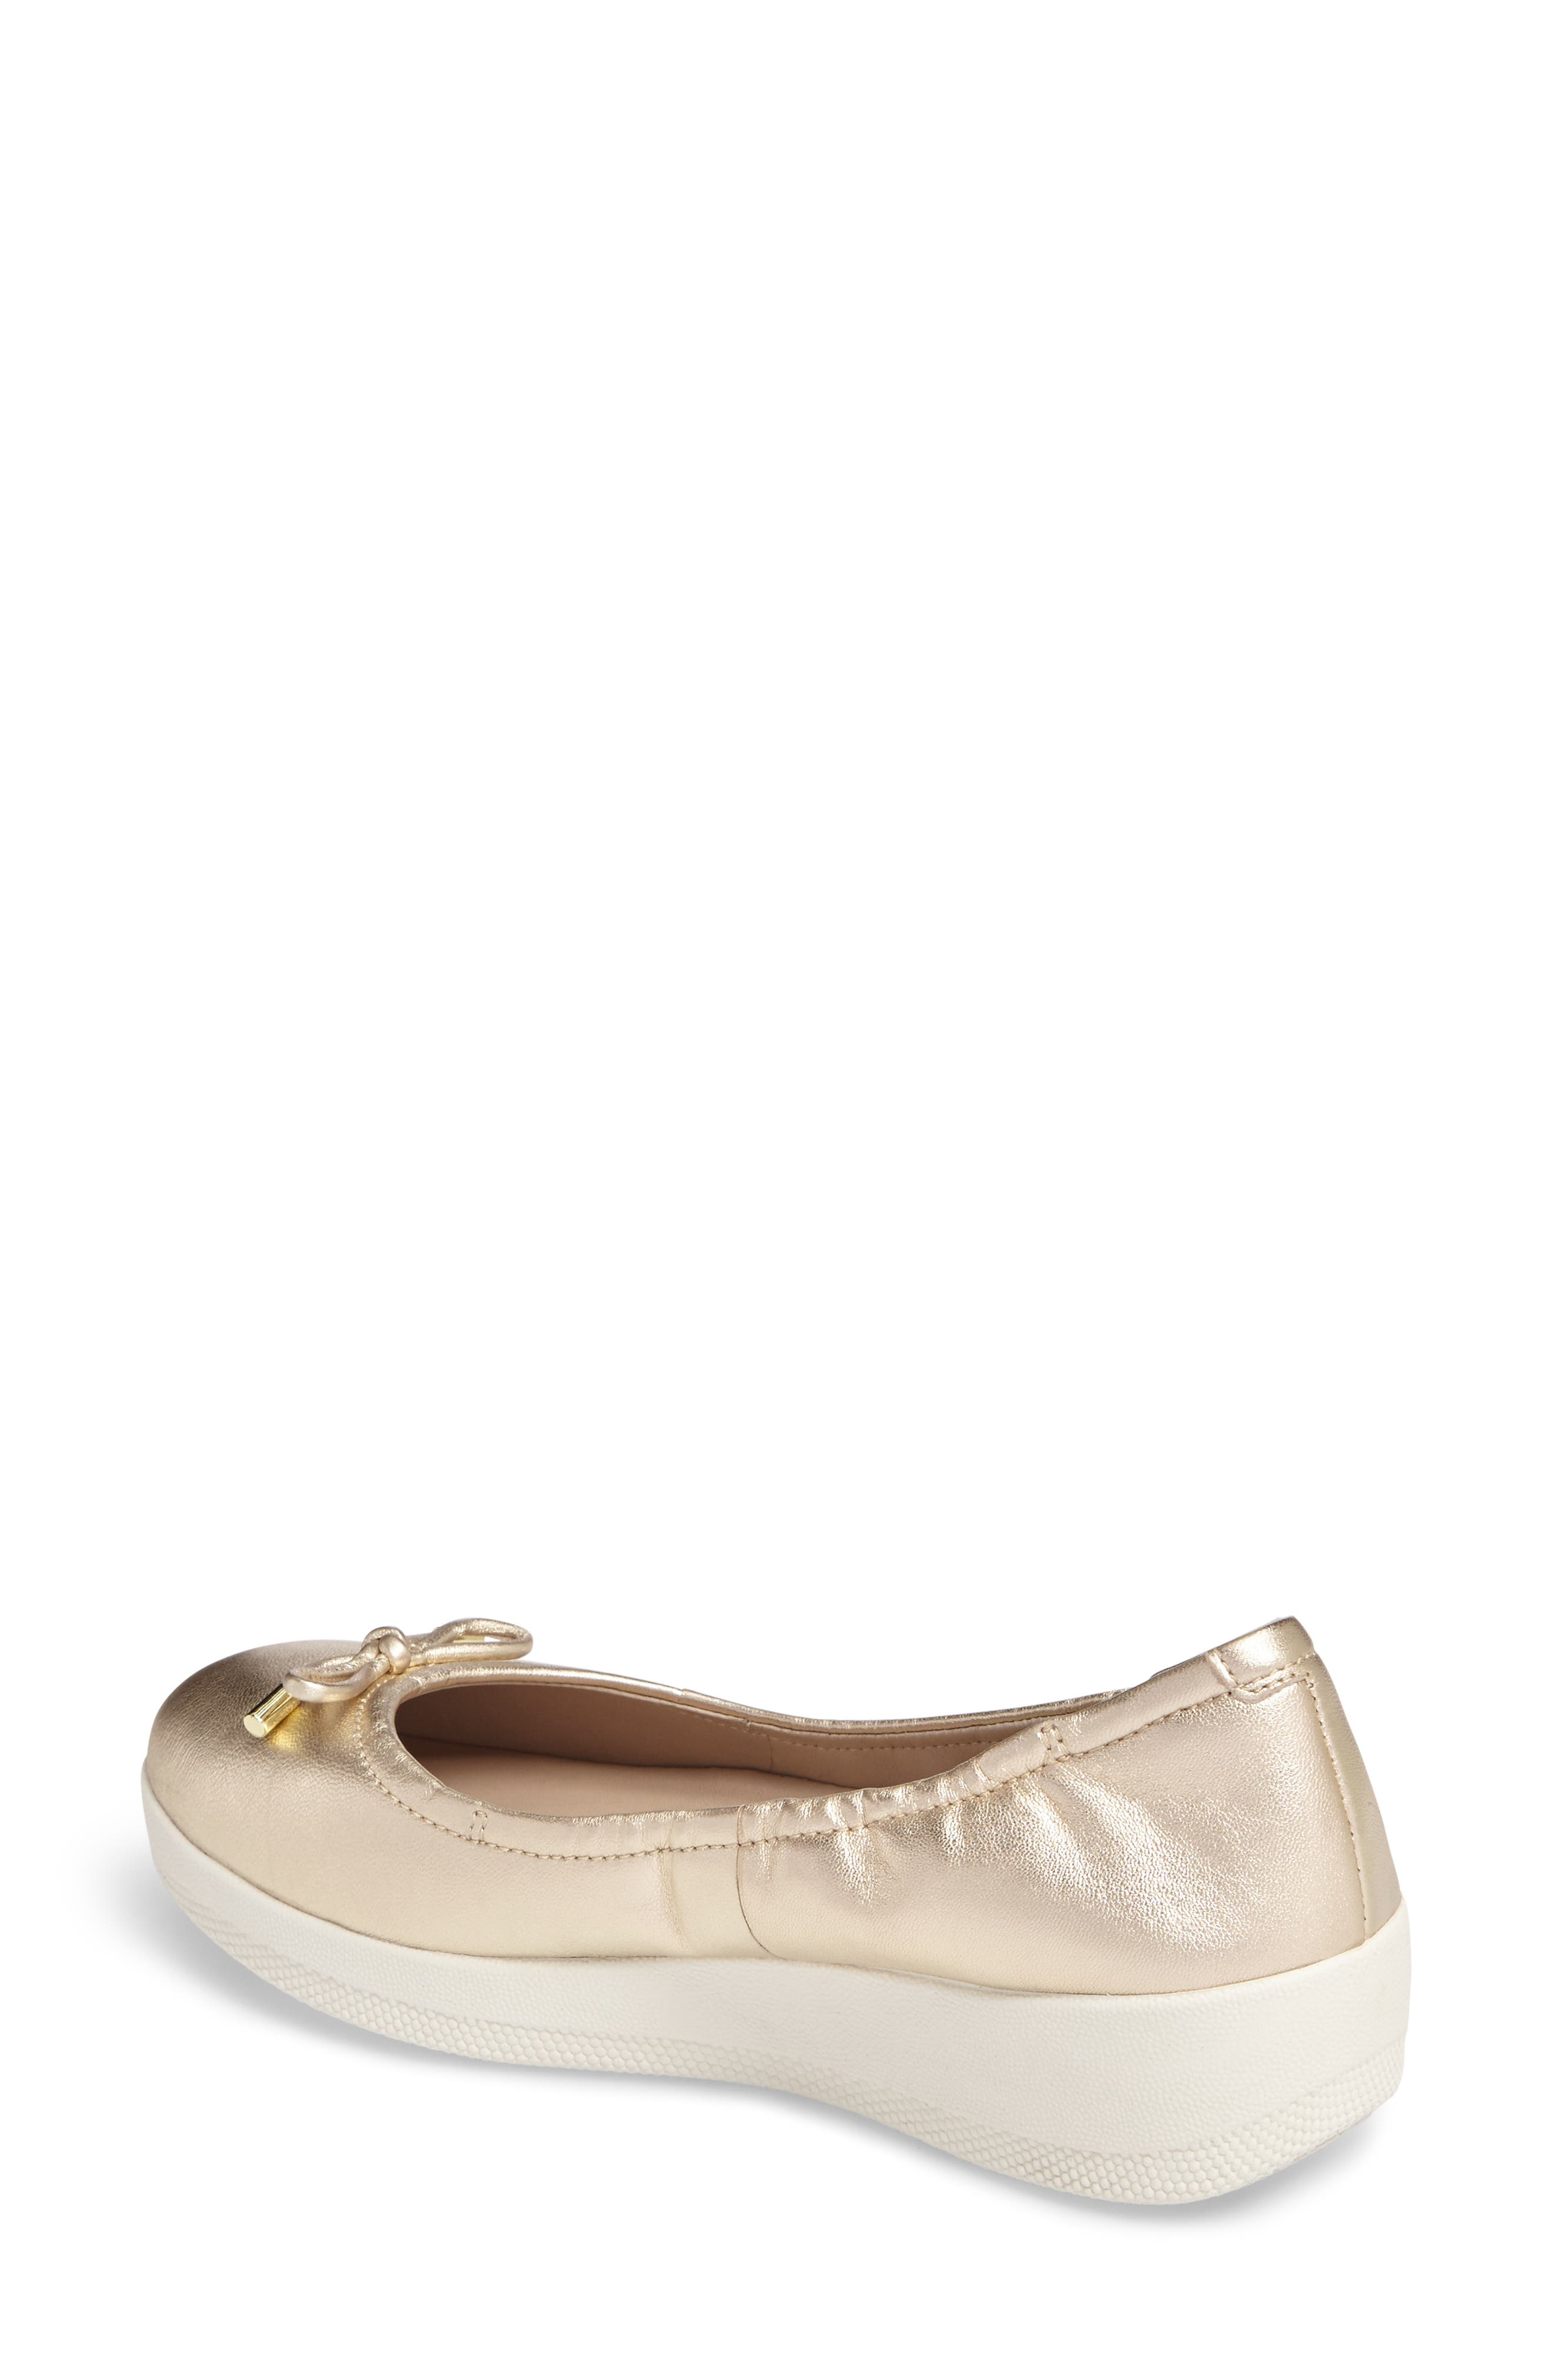 Superbendy Ballerina Flat,                             Alternate thumbnail 2, color,                             Pale Gold Leather